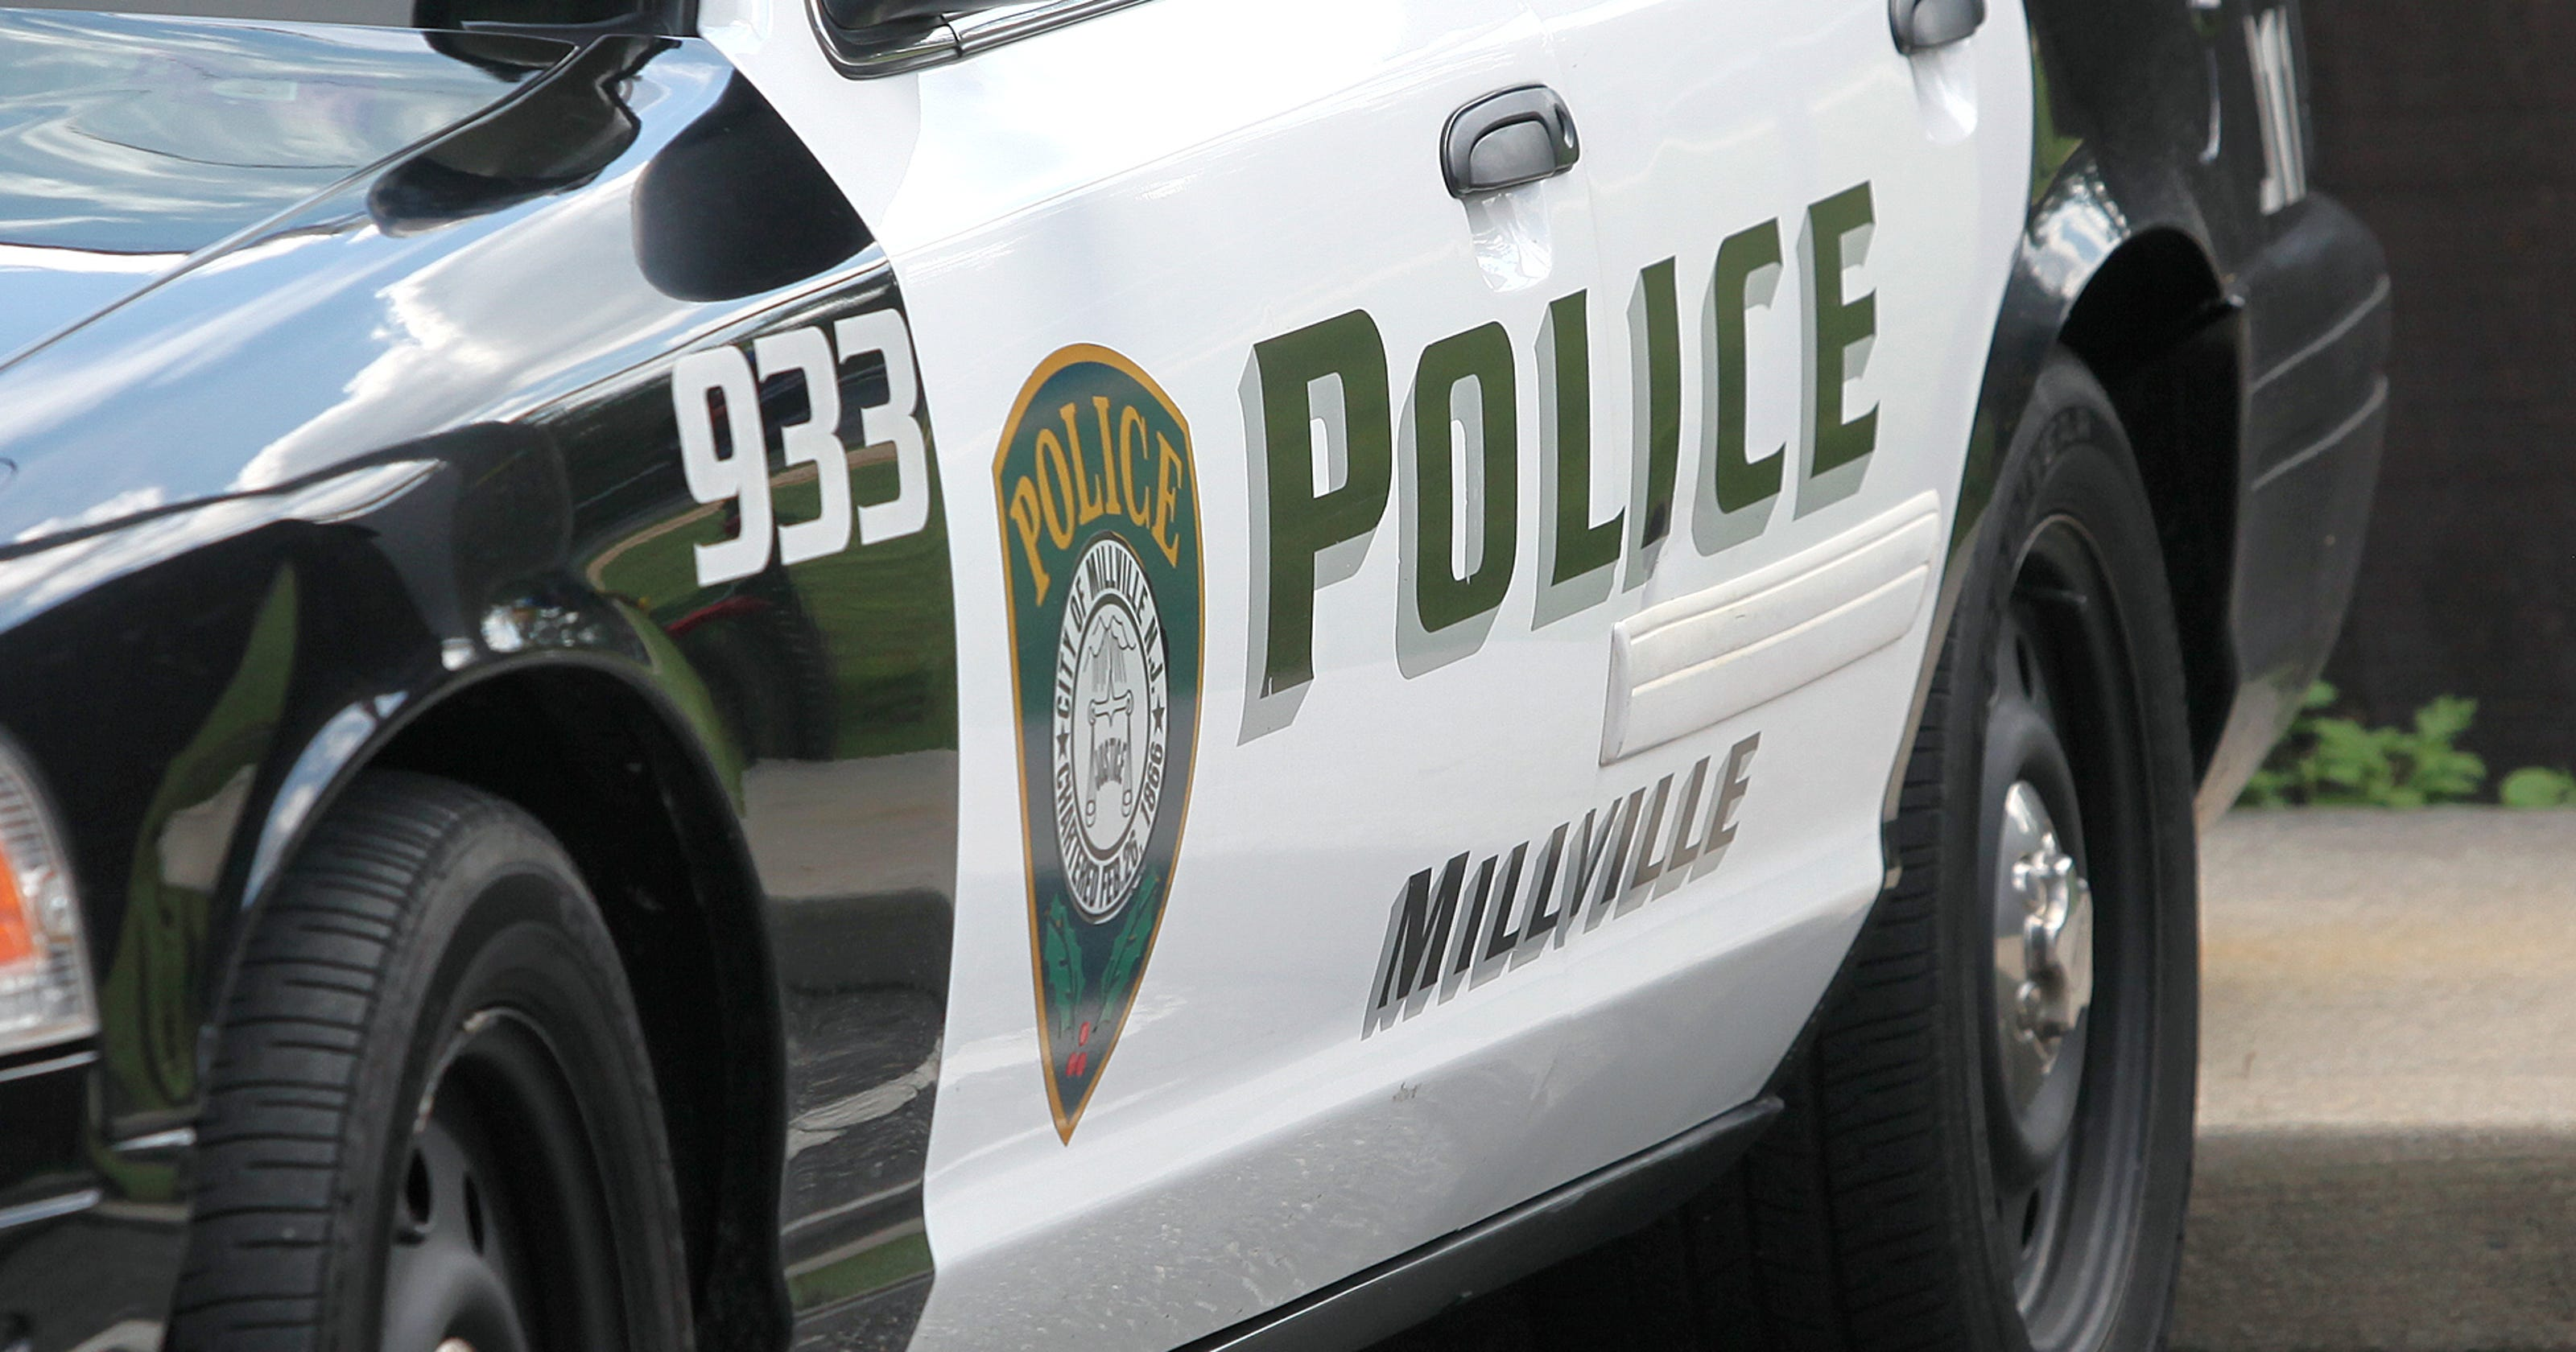 Millville Woman Killed After Being Struck By Two Cars - Millville car show 2018